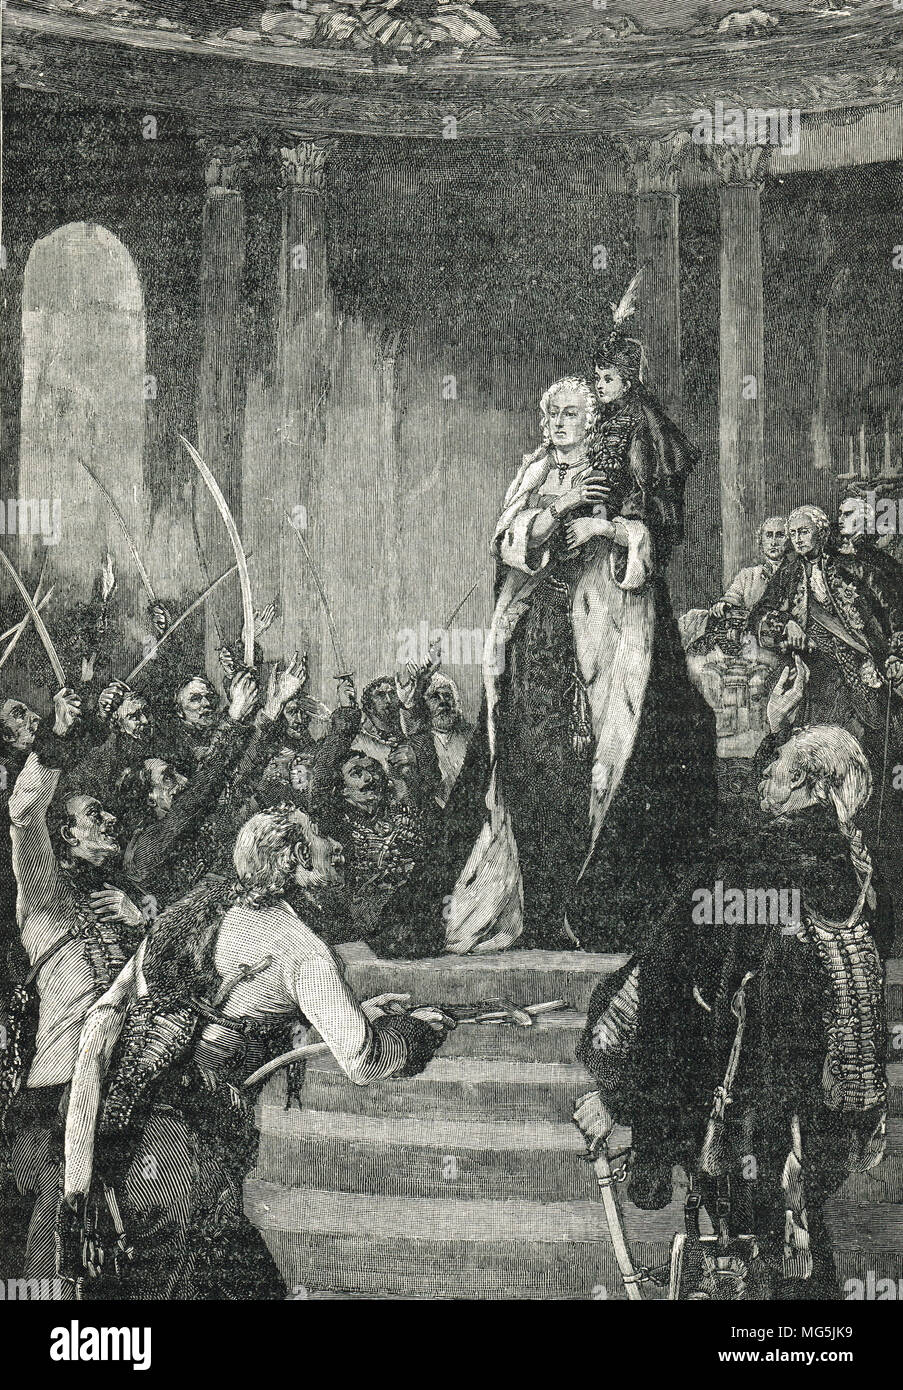 Maria Theresa and the Hungarian Parliament, triumphantly holding her son Joseph, before the diet of Hungary, Pressburg, September 1741 - Stock Image